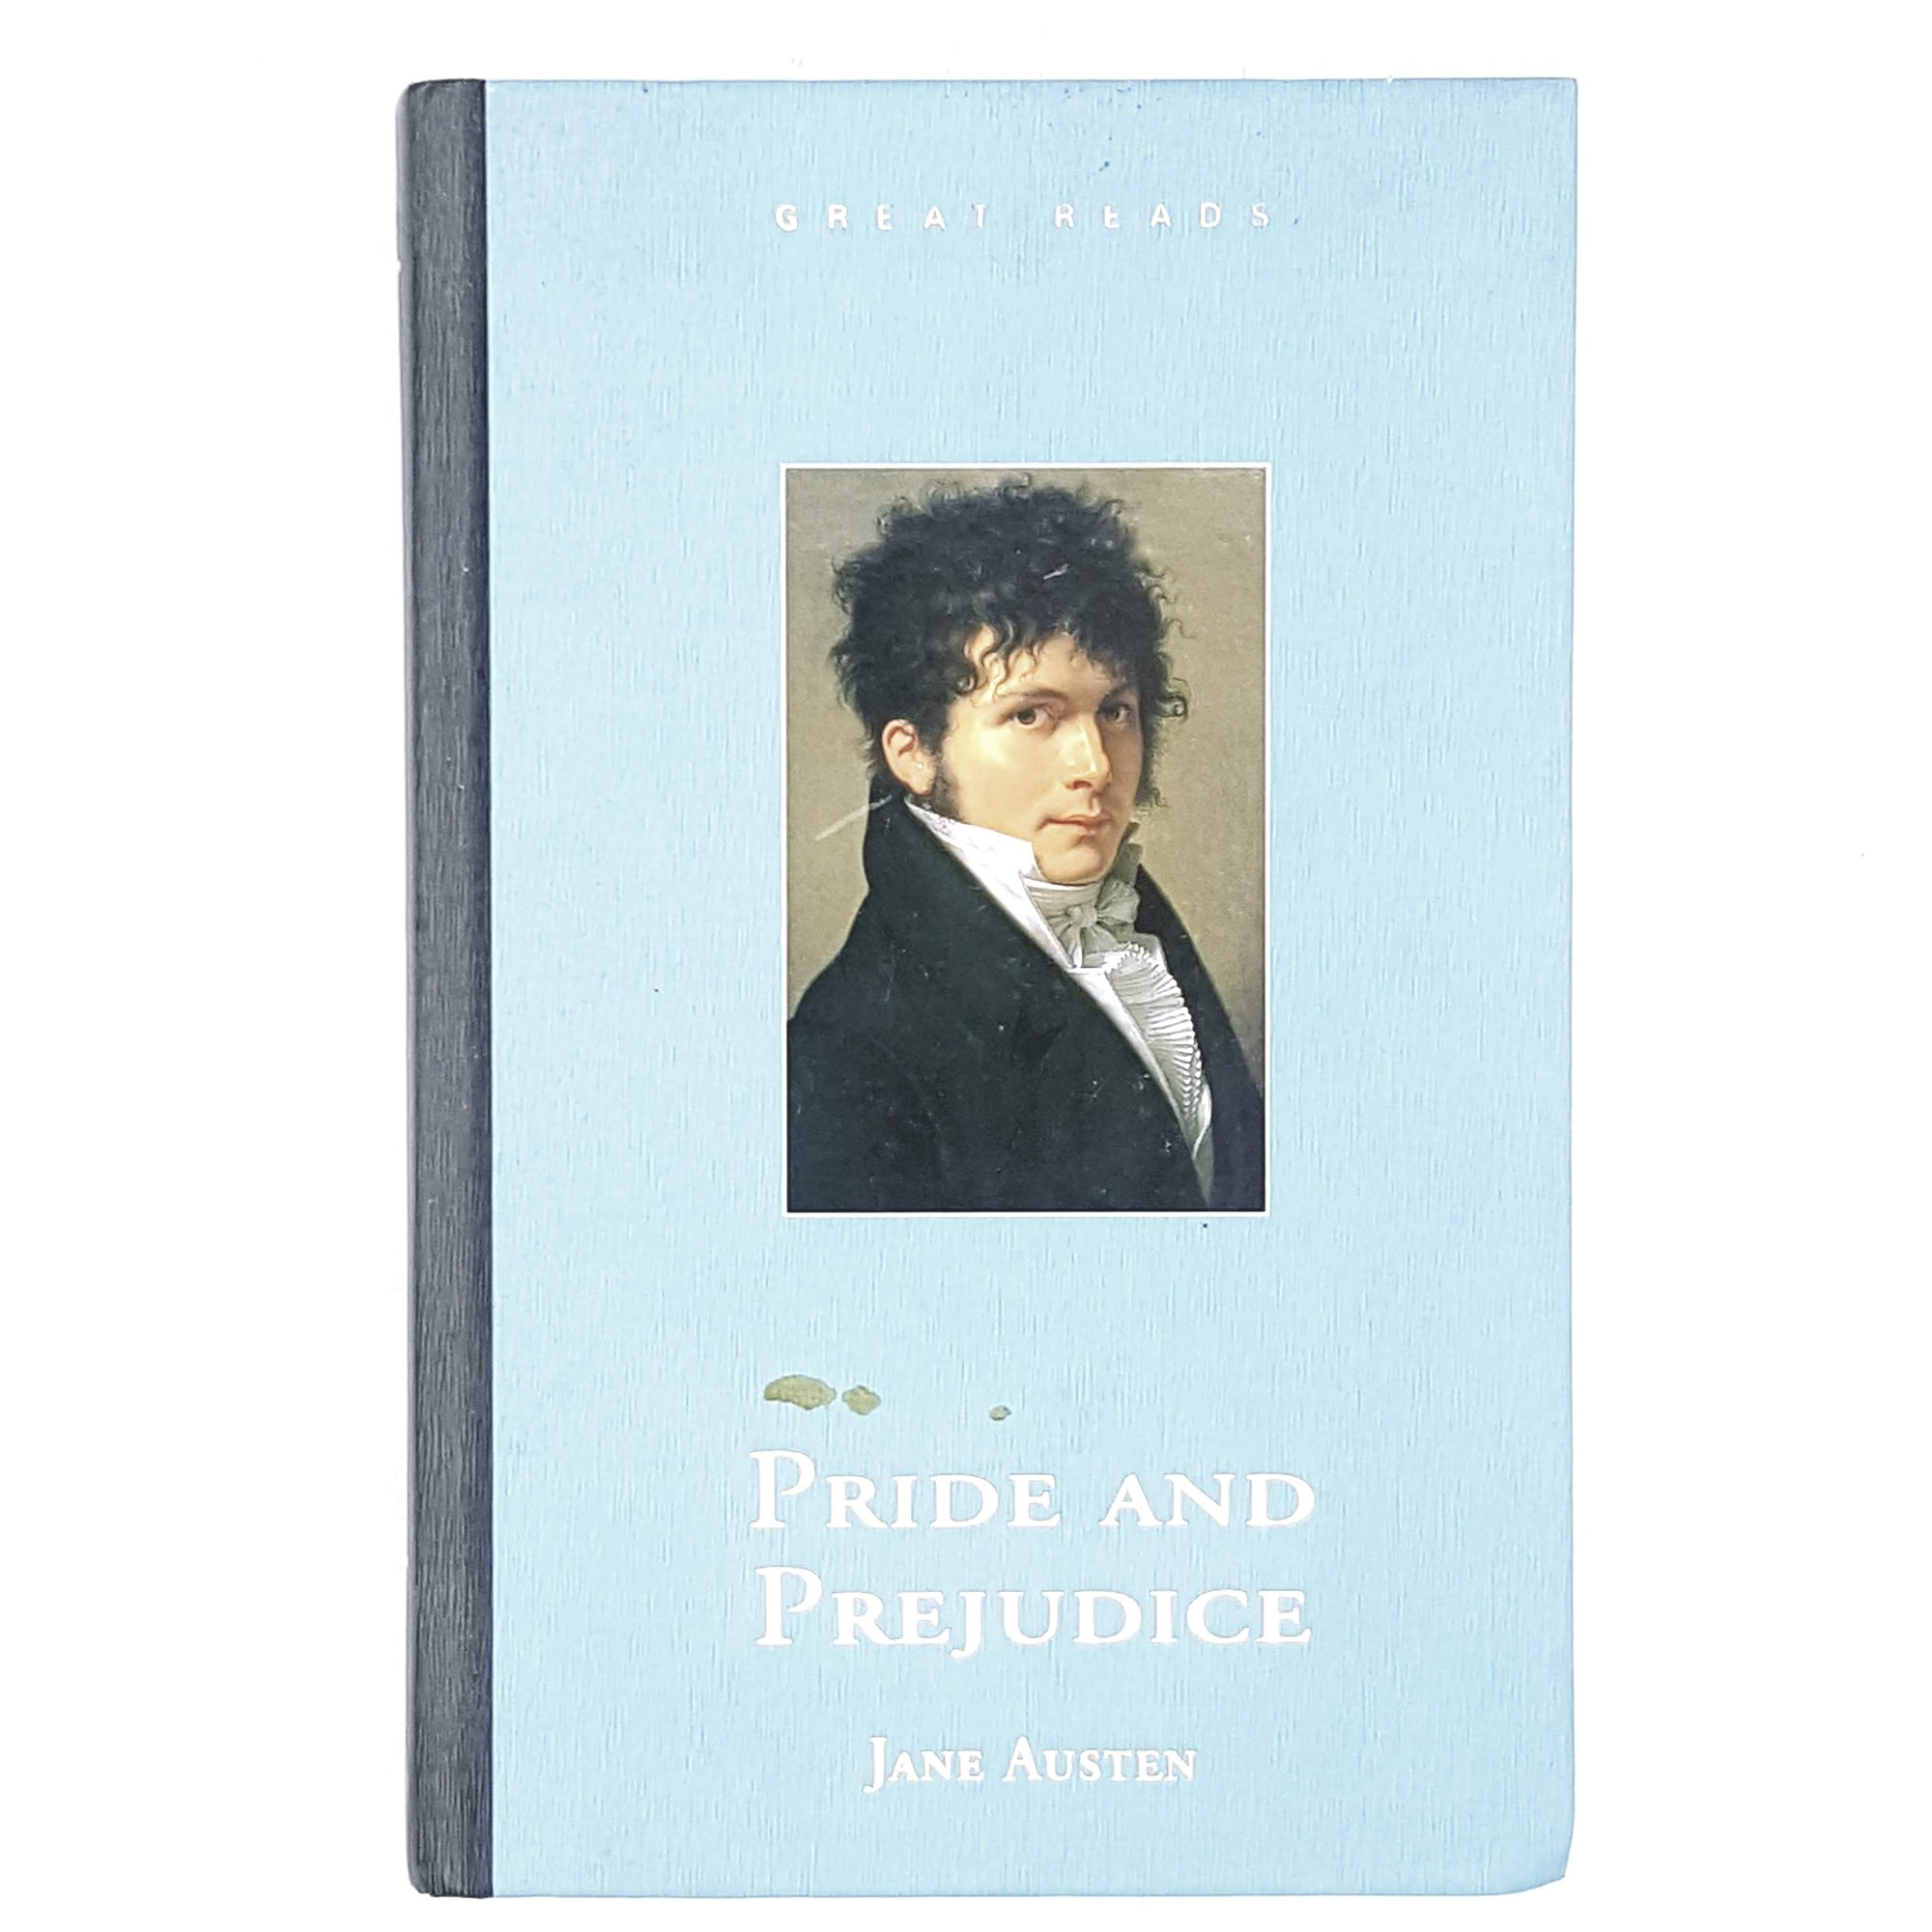 Jane Austen's Pride and Prejudice pale blue